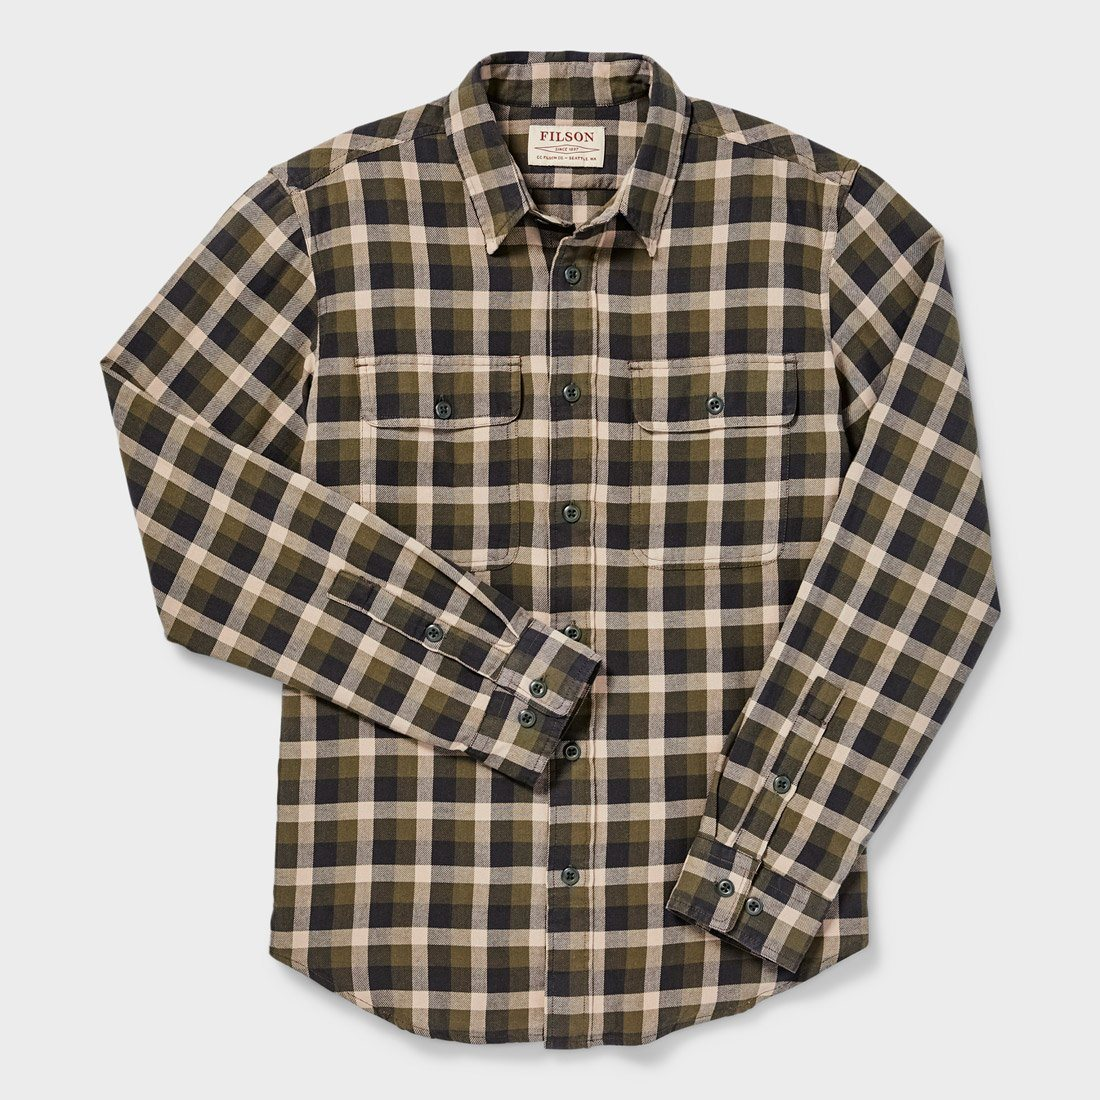 Filson Scout Shirt Olive/ Brown Plaid